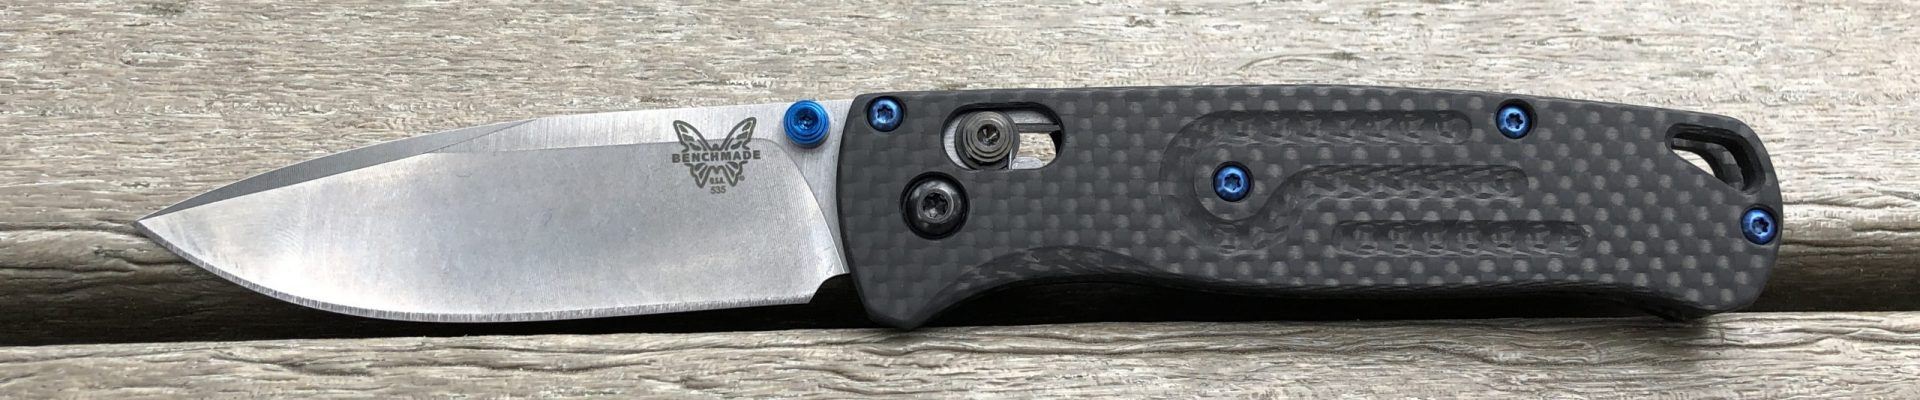 Benchmade Bugout Review: A Misleading Name